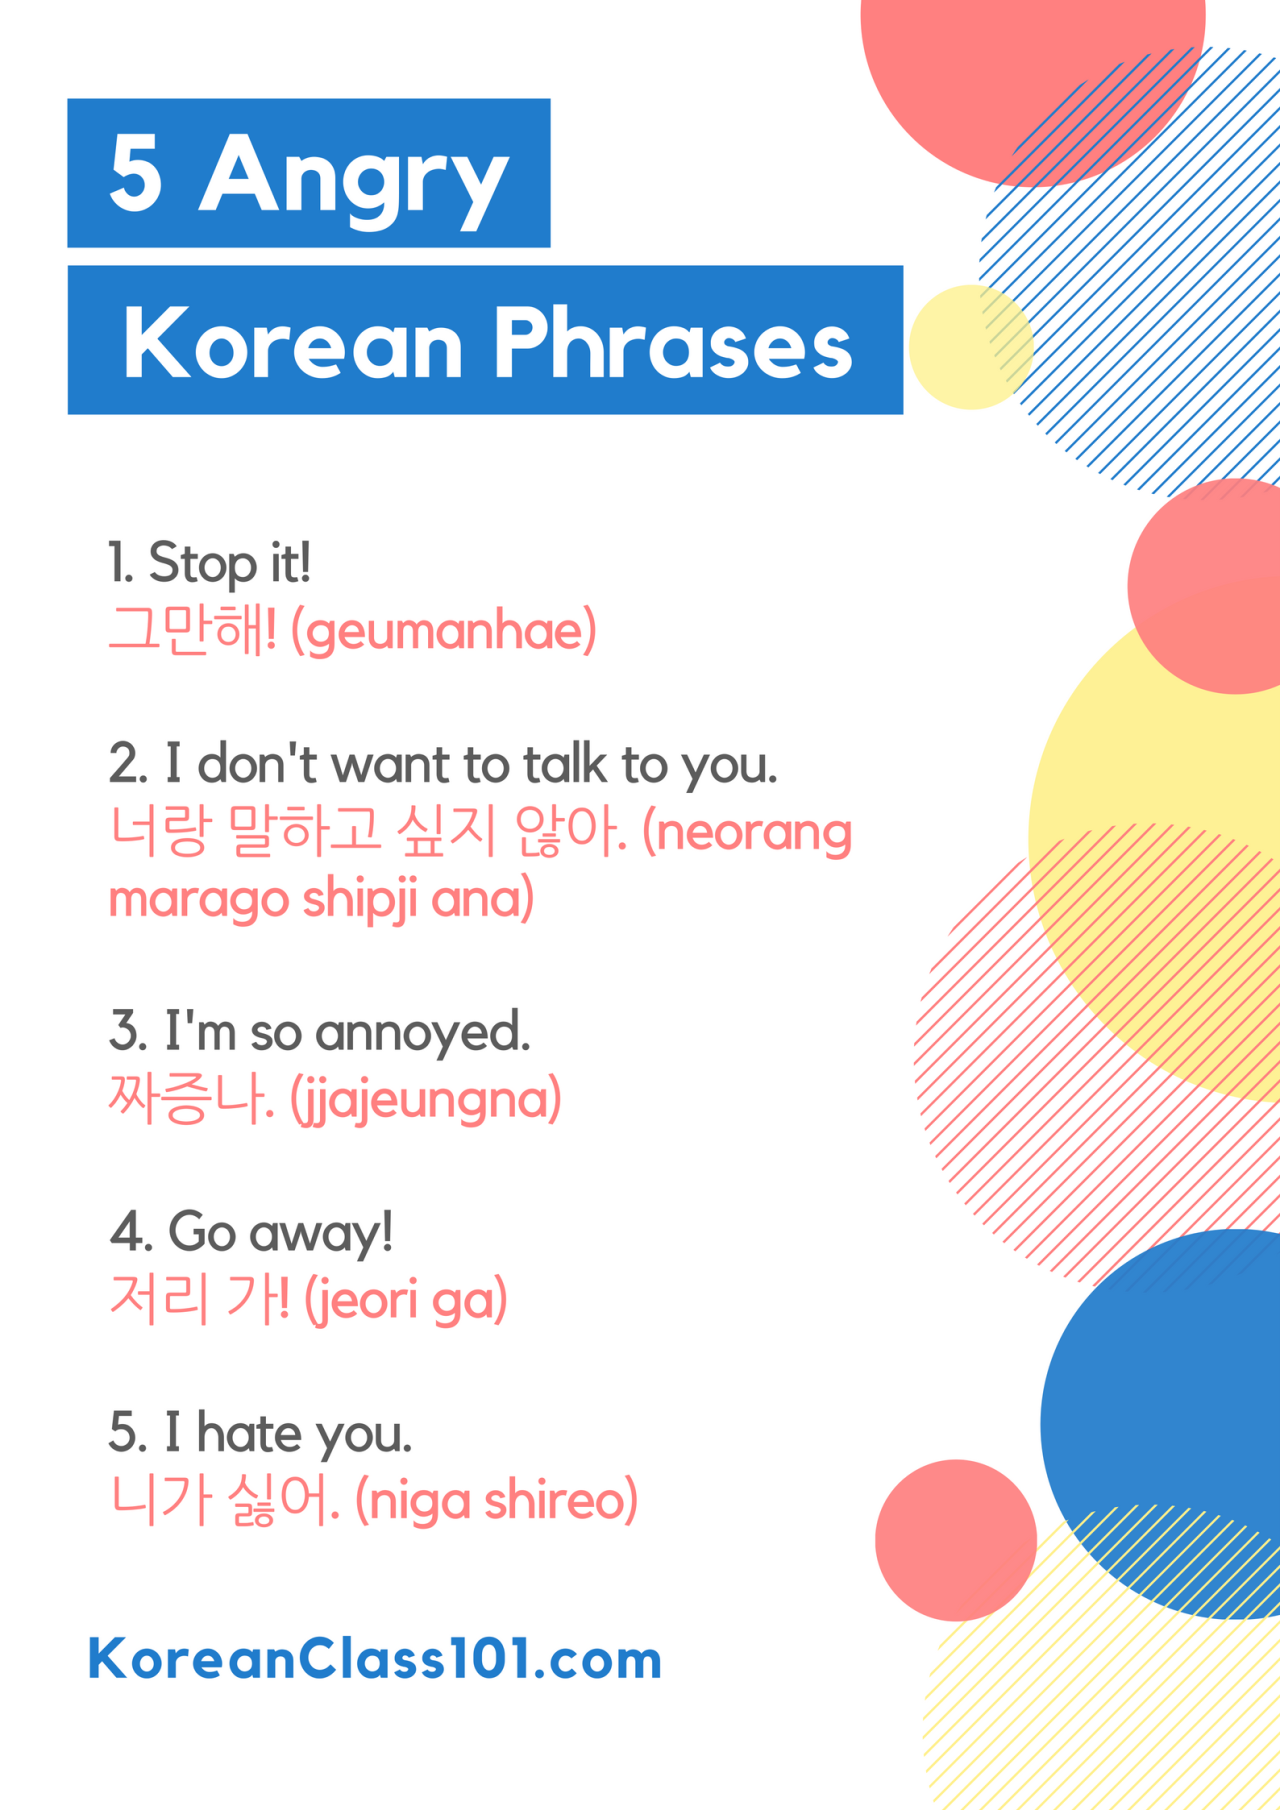 Korean lyrics words phrases chines words quotes by korean lyrics words phrases chines words quotes by neonlynxie liked on polyvore featuring hangul korean words words phrase quotes sa kristyandbryce Choice Image